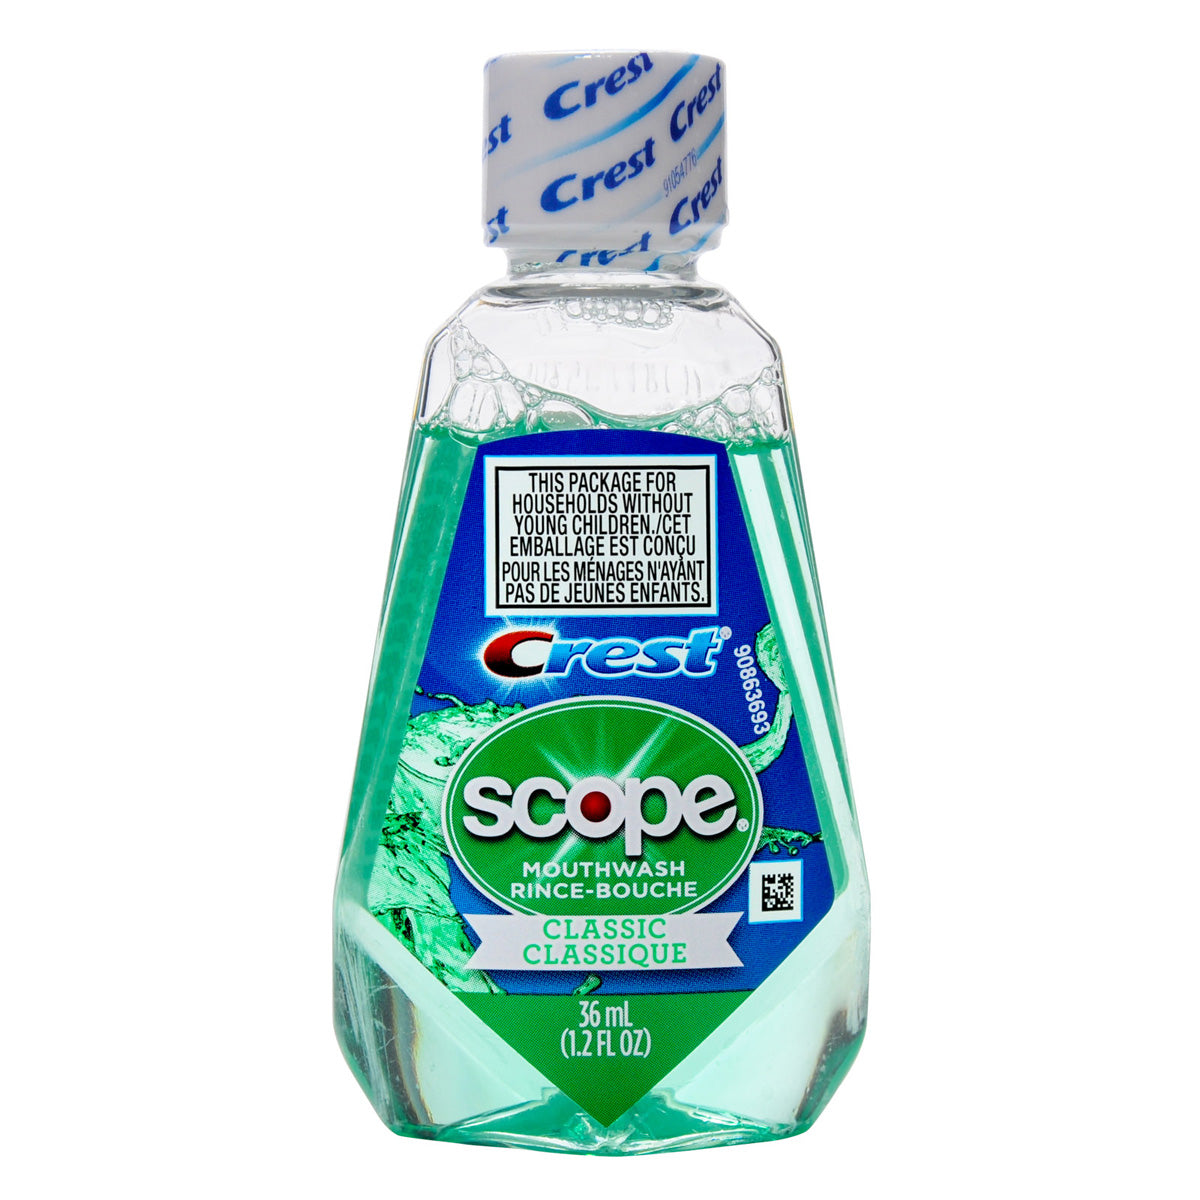 Crest Scope Mouthwash - Travel PAKT